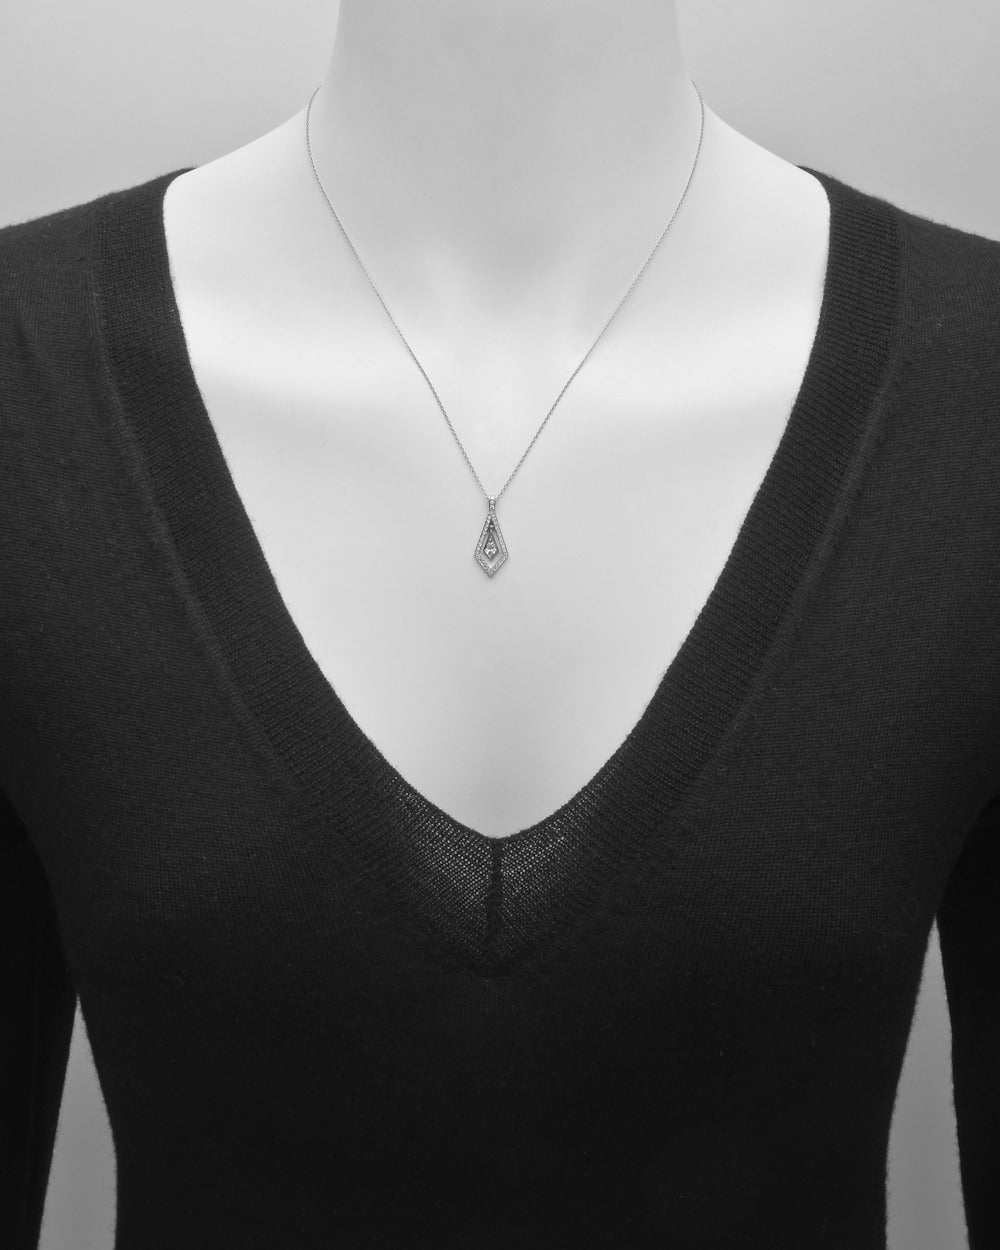 Kite-Shaped Diamond Pendant Necklace 2